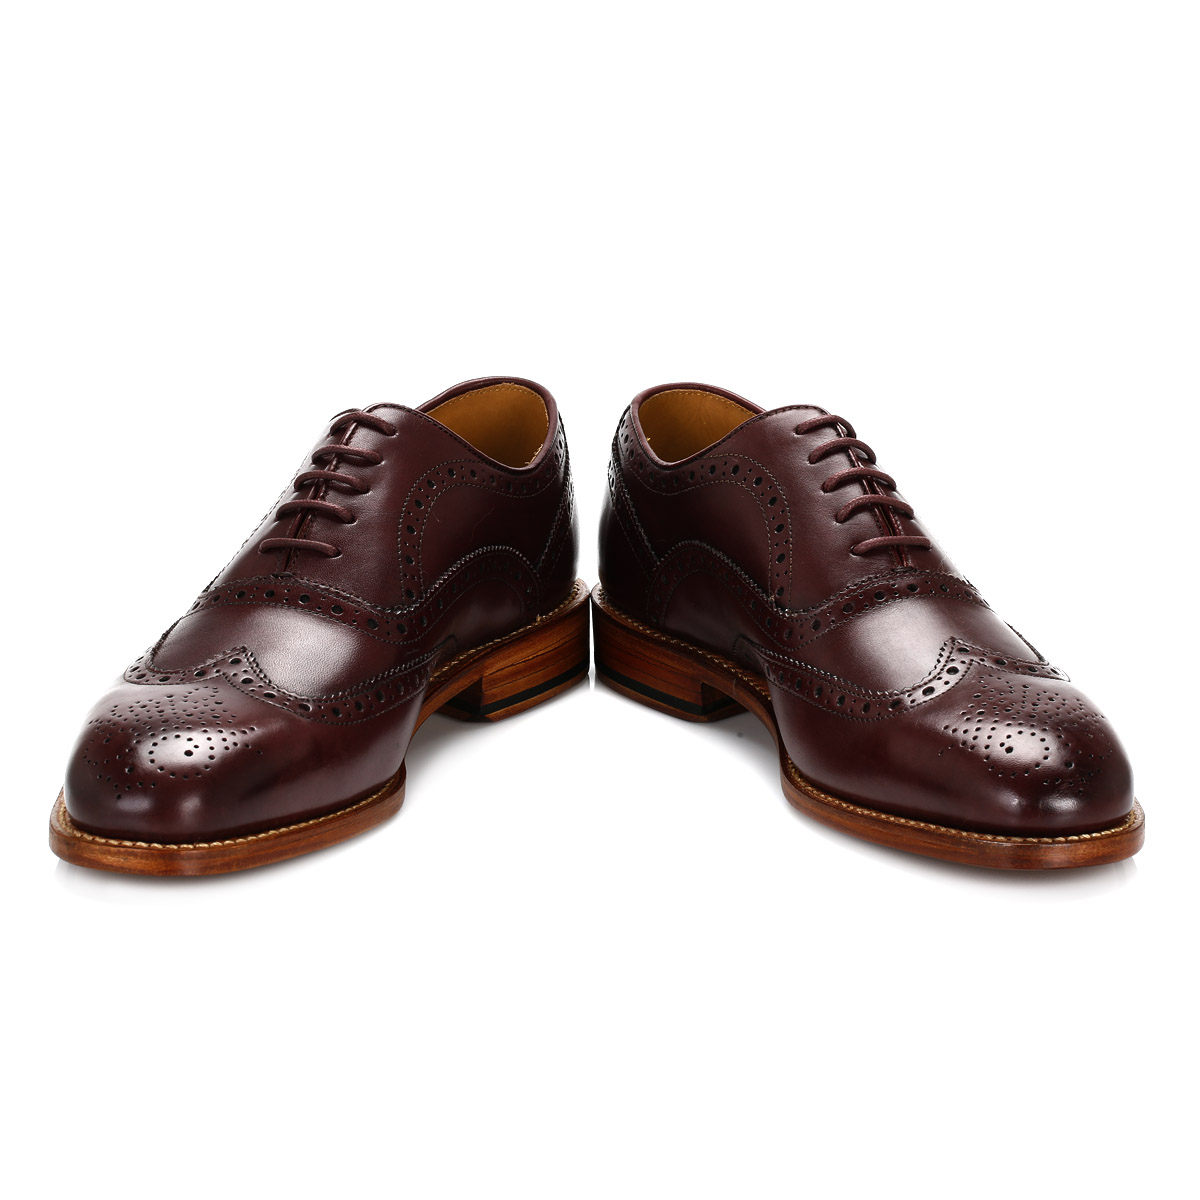 oliver sweeney mens shoes burgundy aldeburgh leather